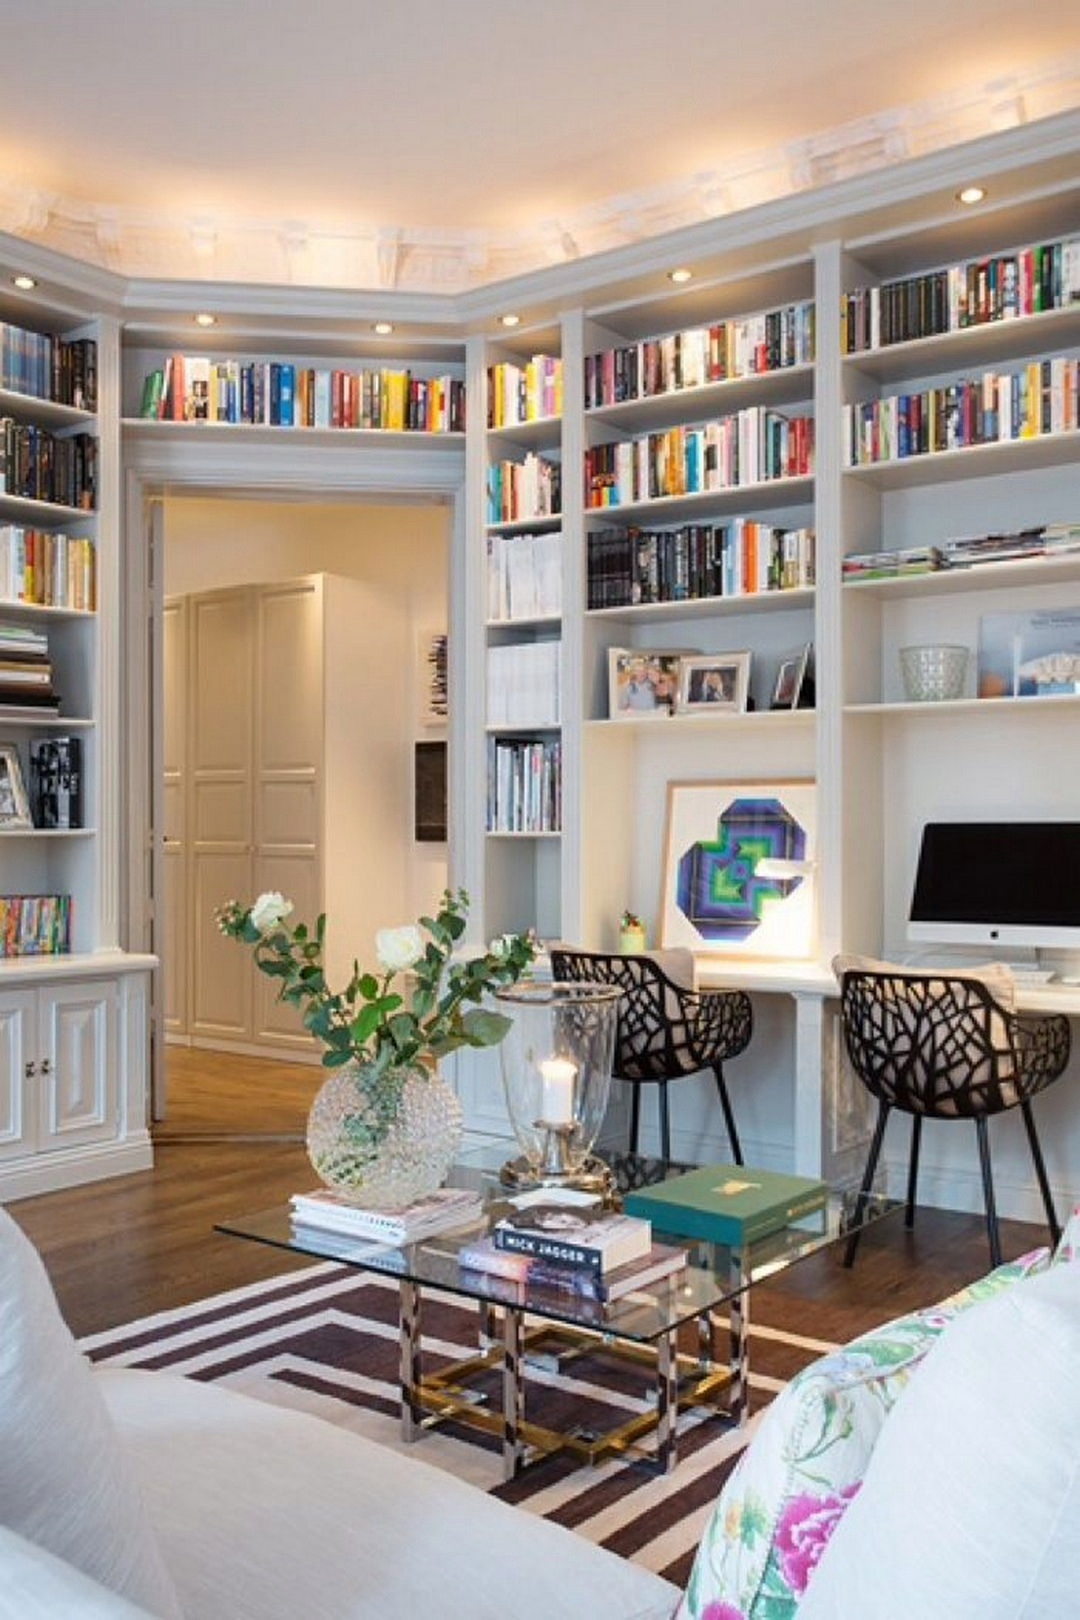 Home Library Design: JMC Zalla: A Single-Family Home With A Contemporary